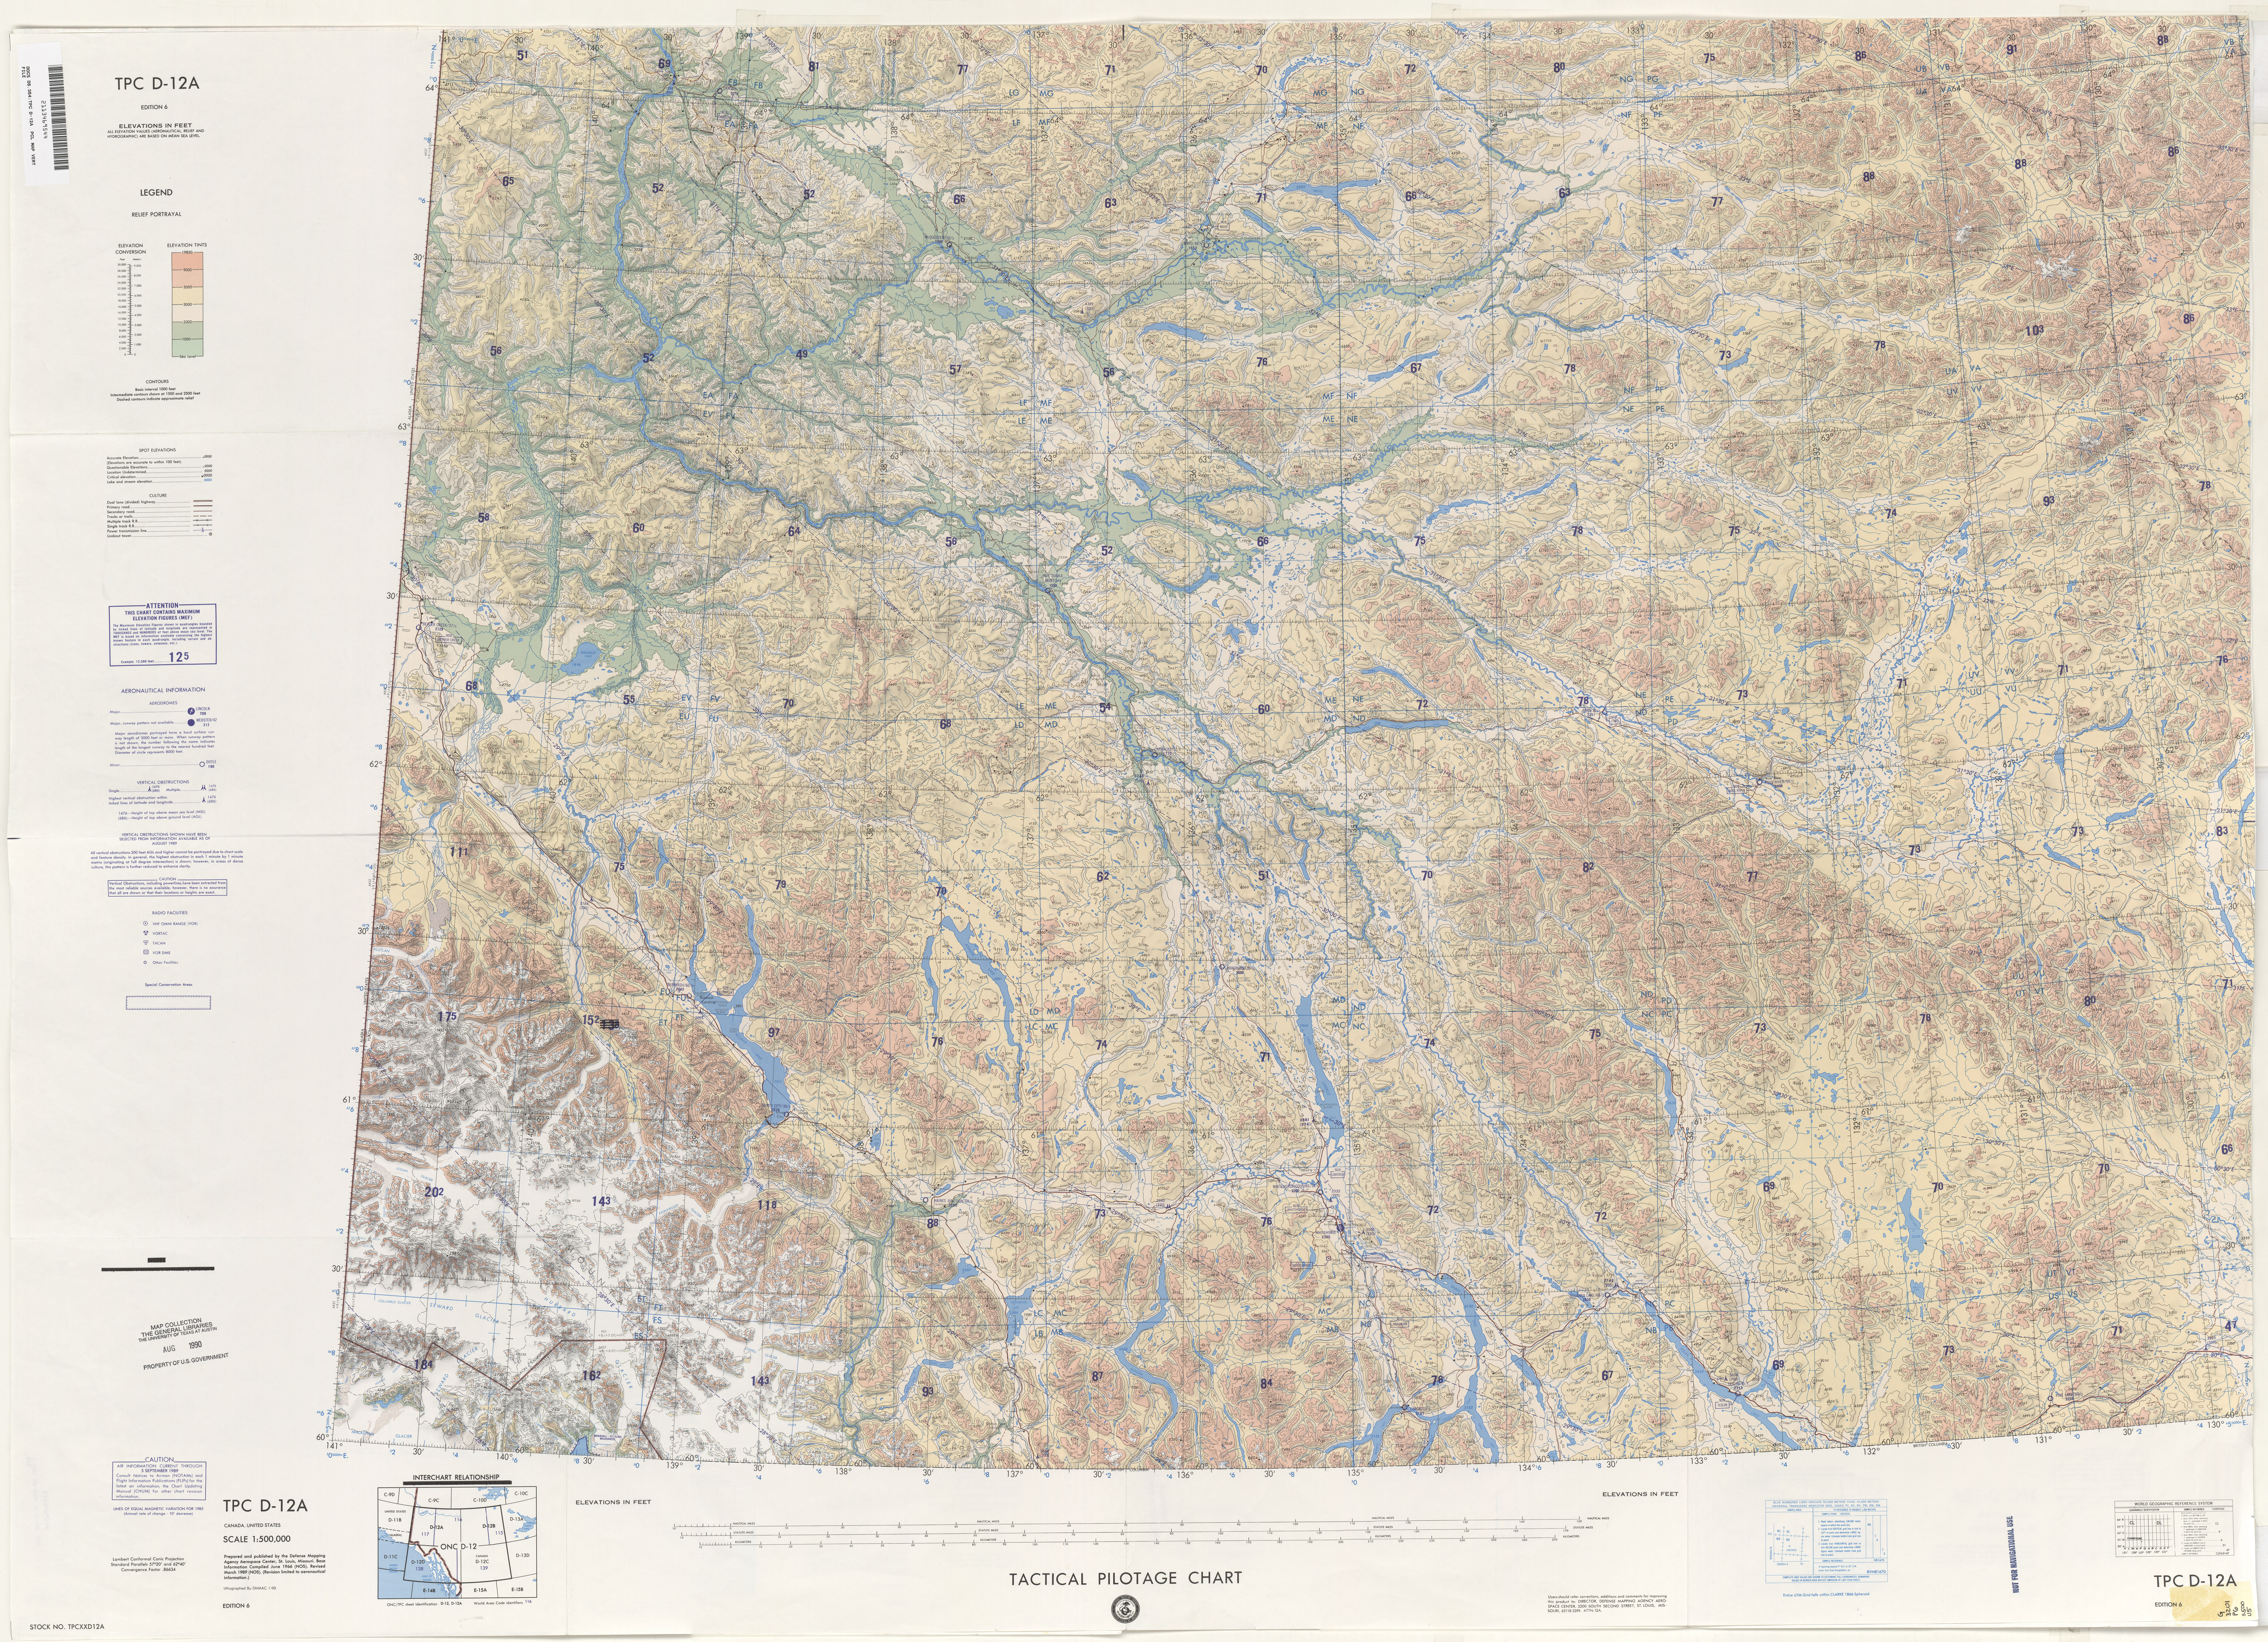 United States Not For Navigational Use U S Defense Mapping Agency Aeroe Center Compiled 1966 Revised 1989 23 5mb